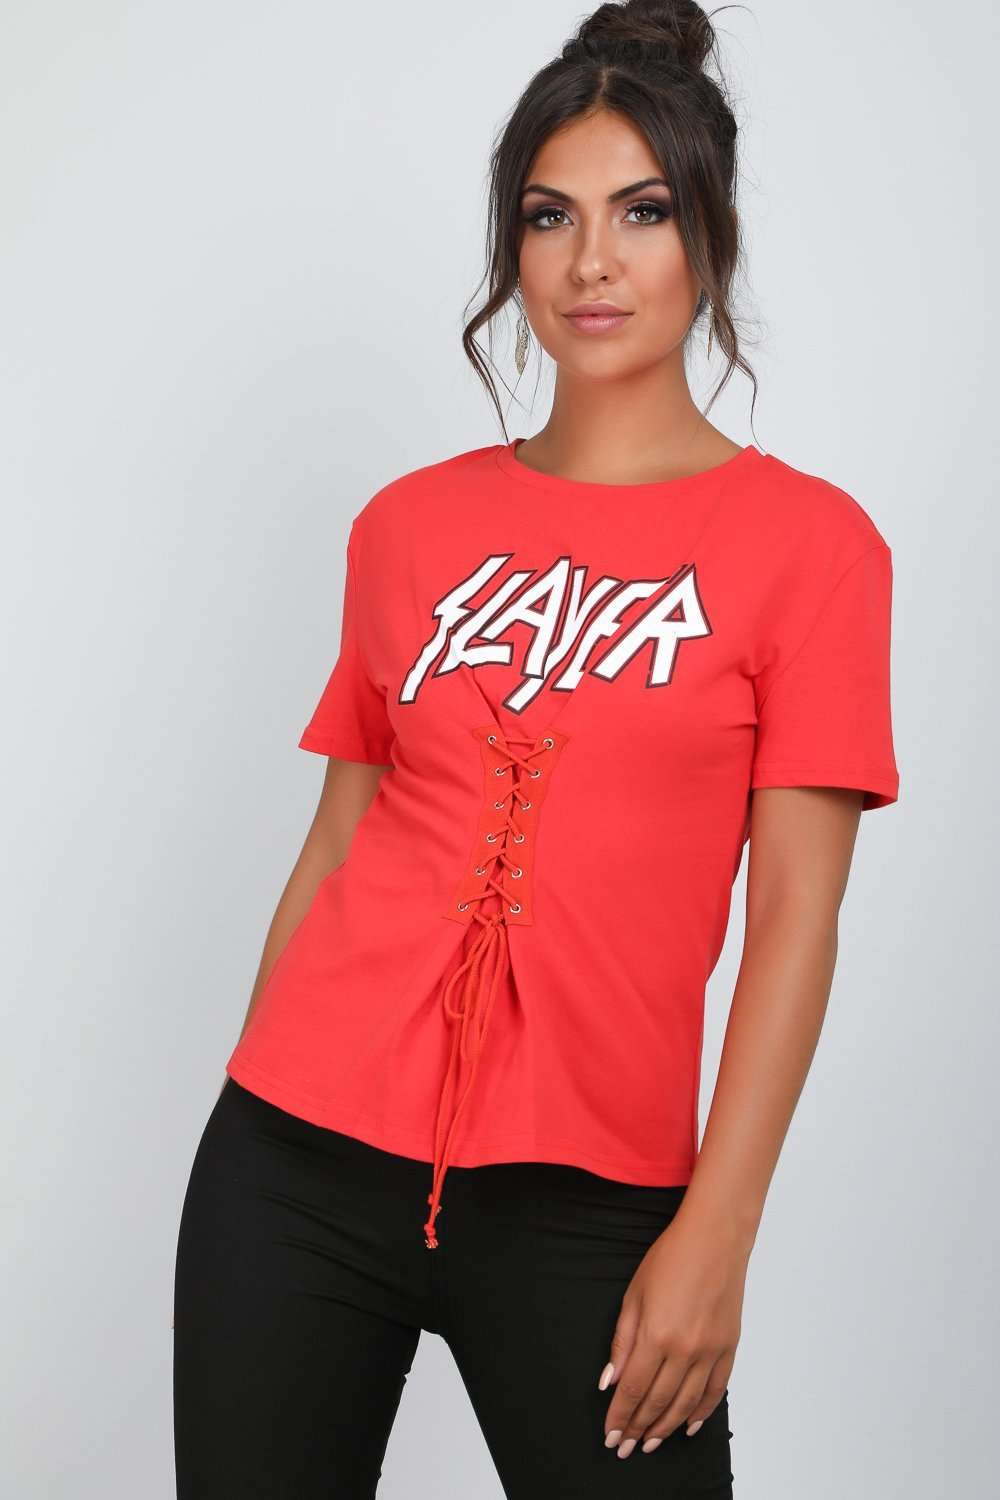 Mona Slayer Graphic Print Lace Up TShirt - bejealous-com